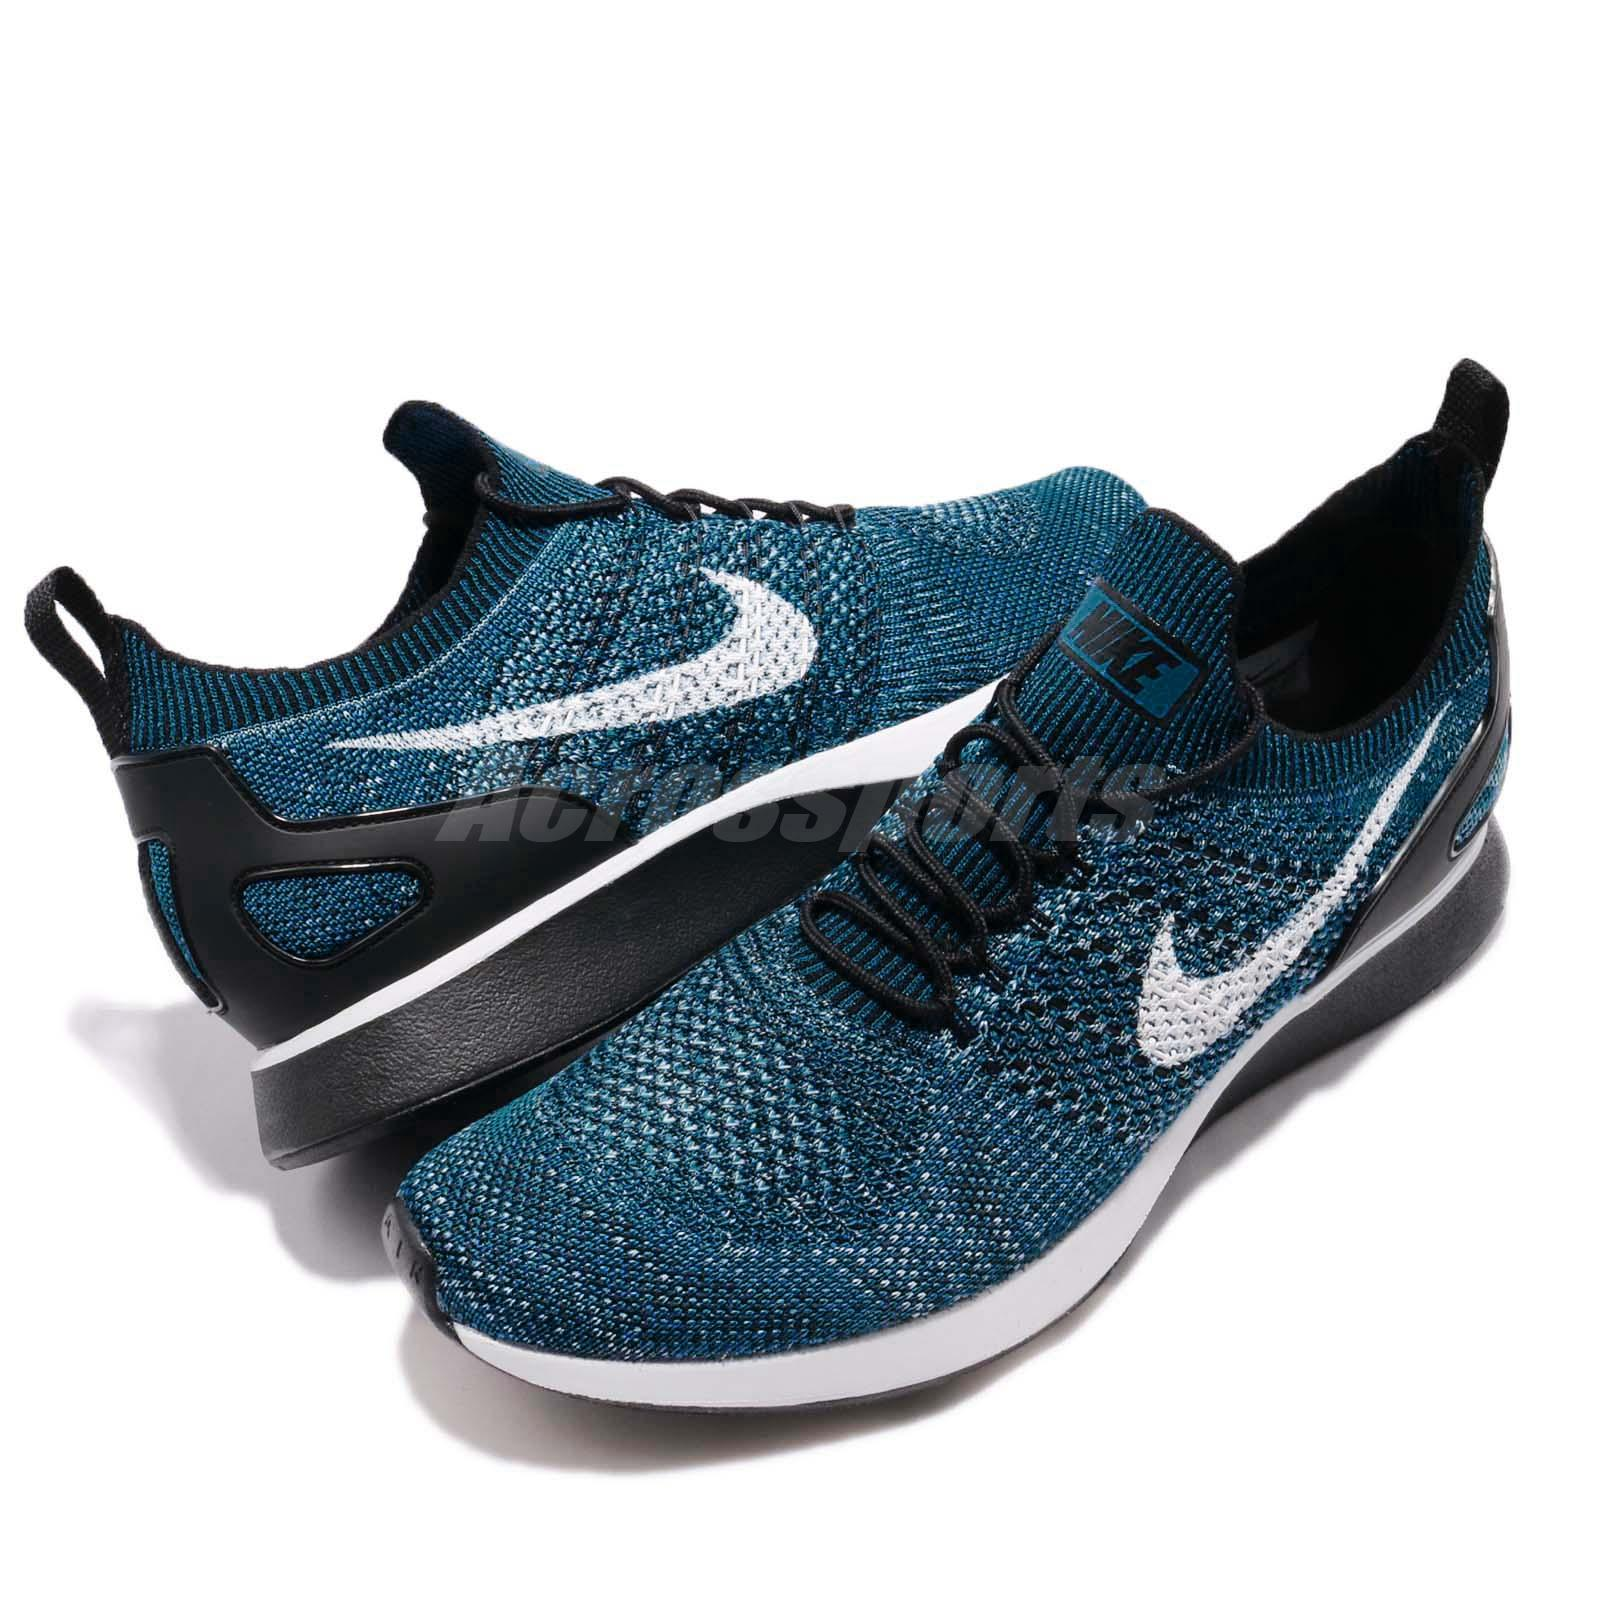 db65a840d2728 Nike Air Zoom Mariah Flyknit Racer Cirrus Blue Navy Black Men ...